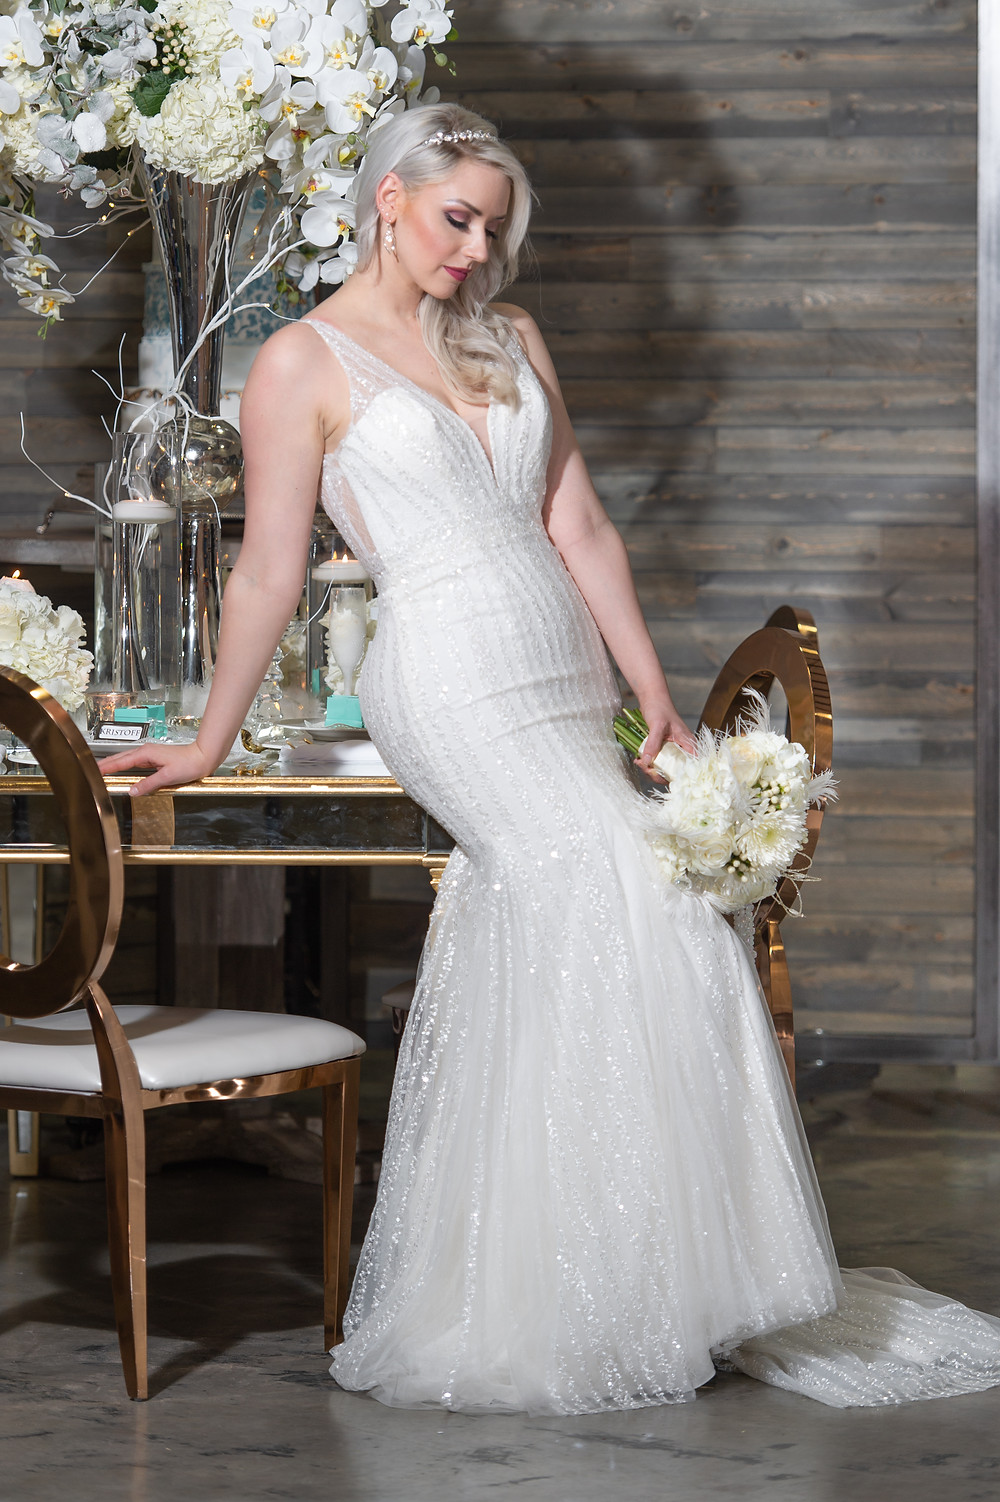 Model in white mermaid-style wedding dress and custom decorative headpiece with bouquet